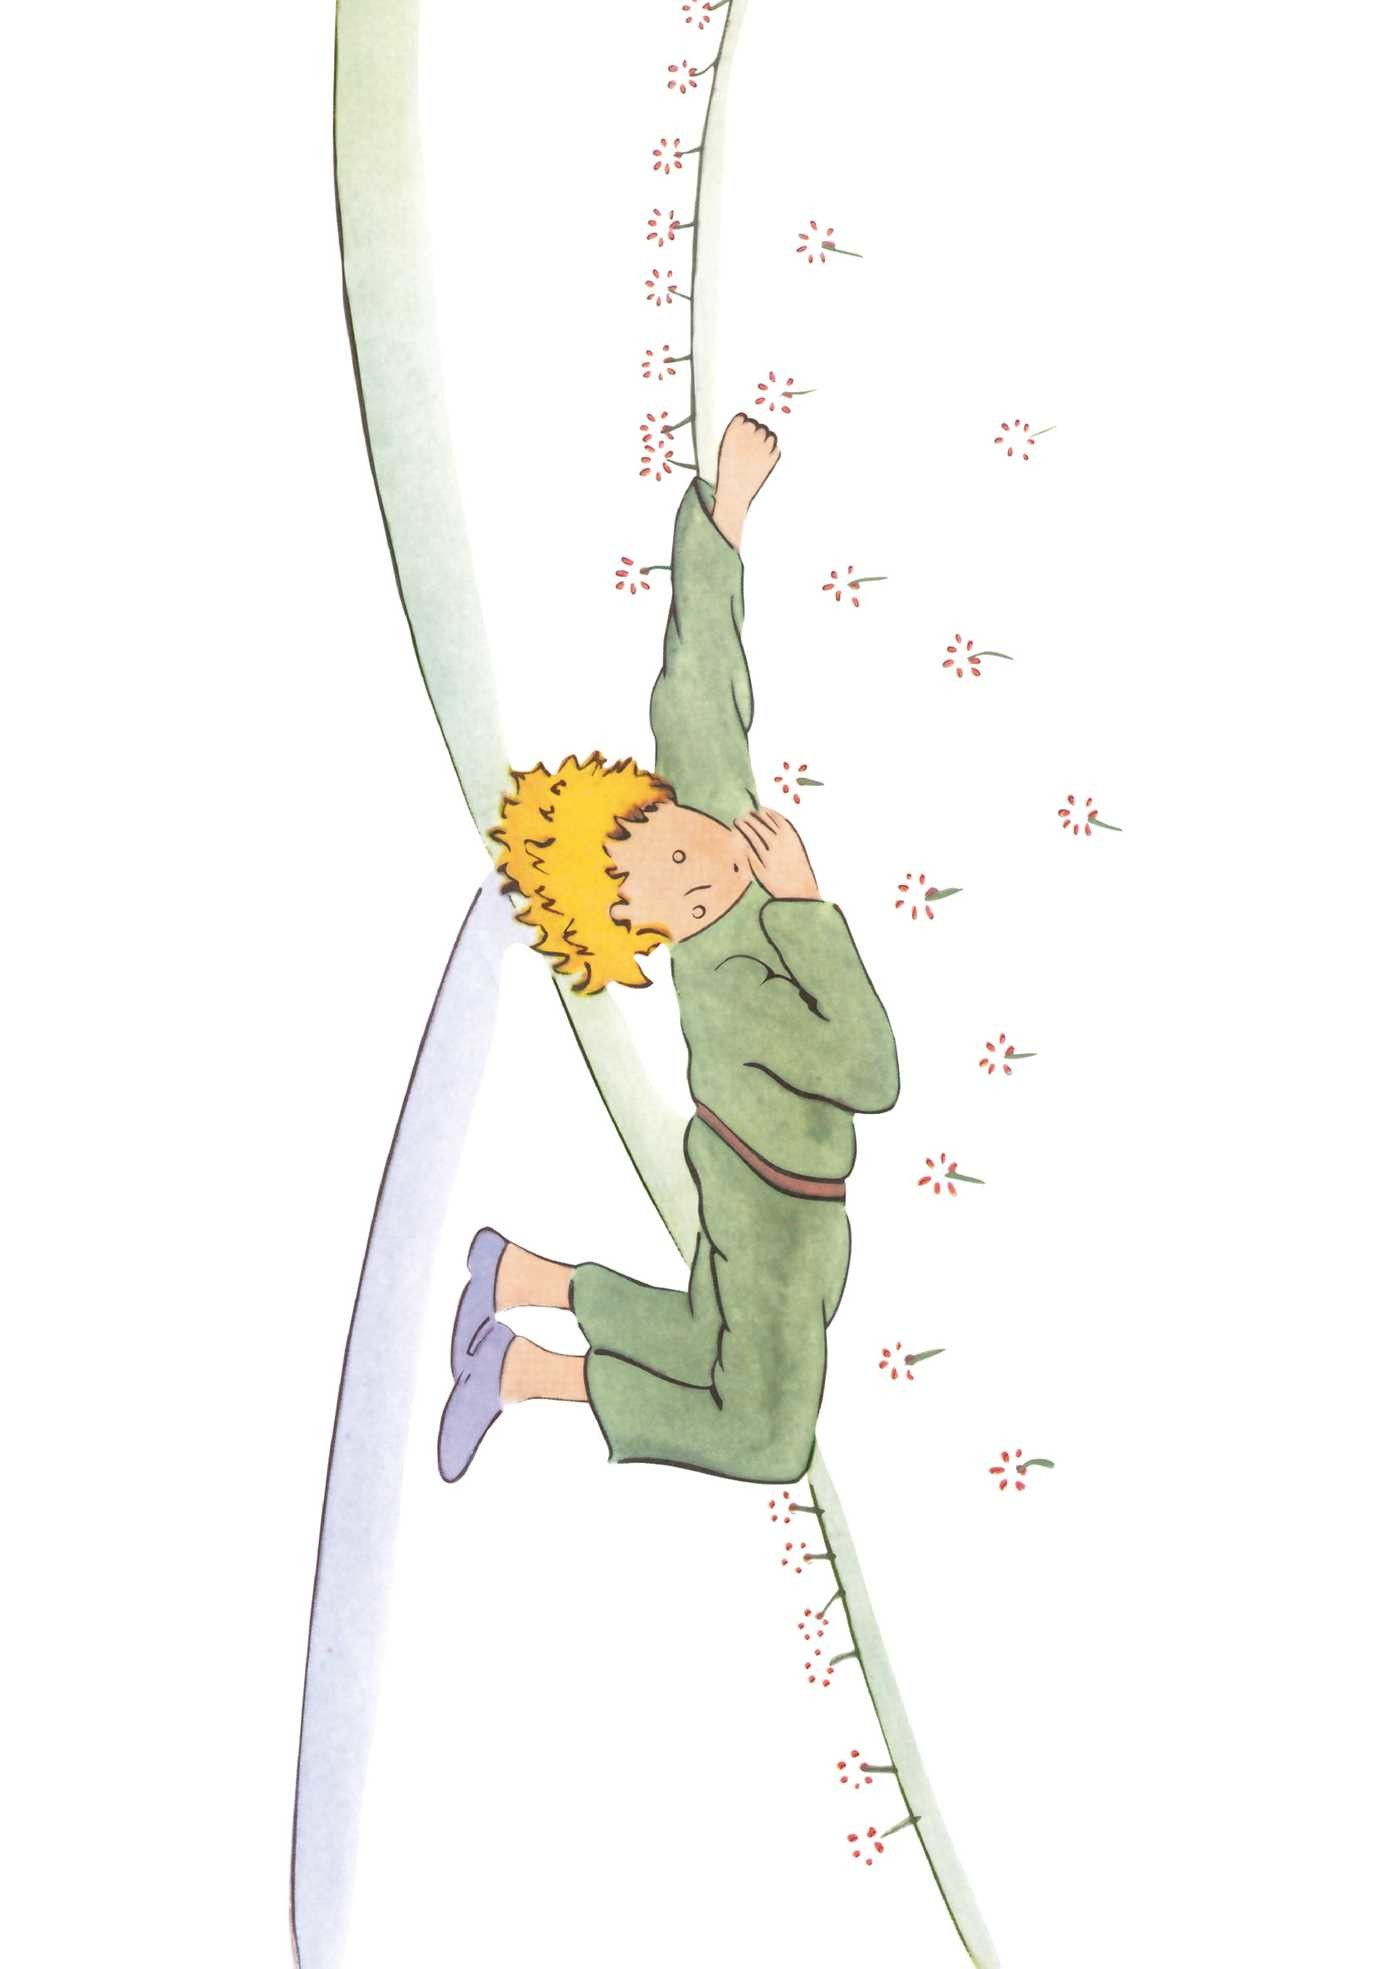 The little prince 9782374950136.in05